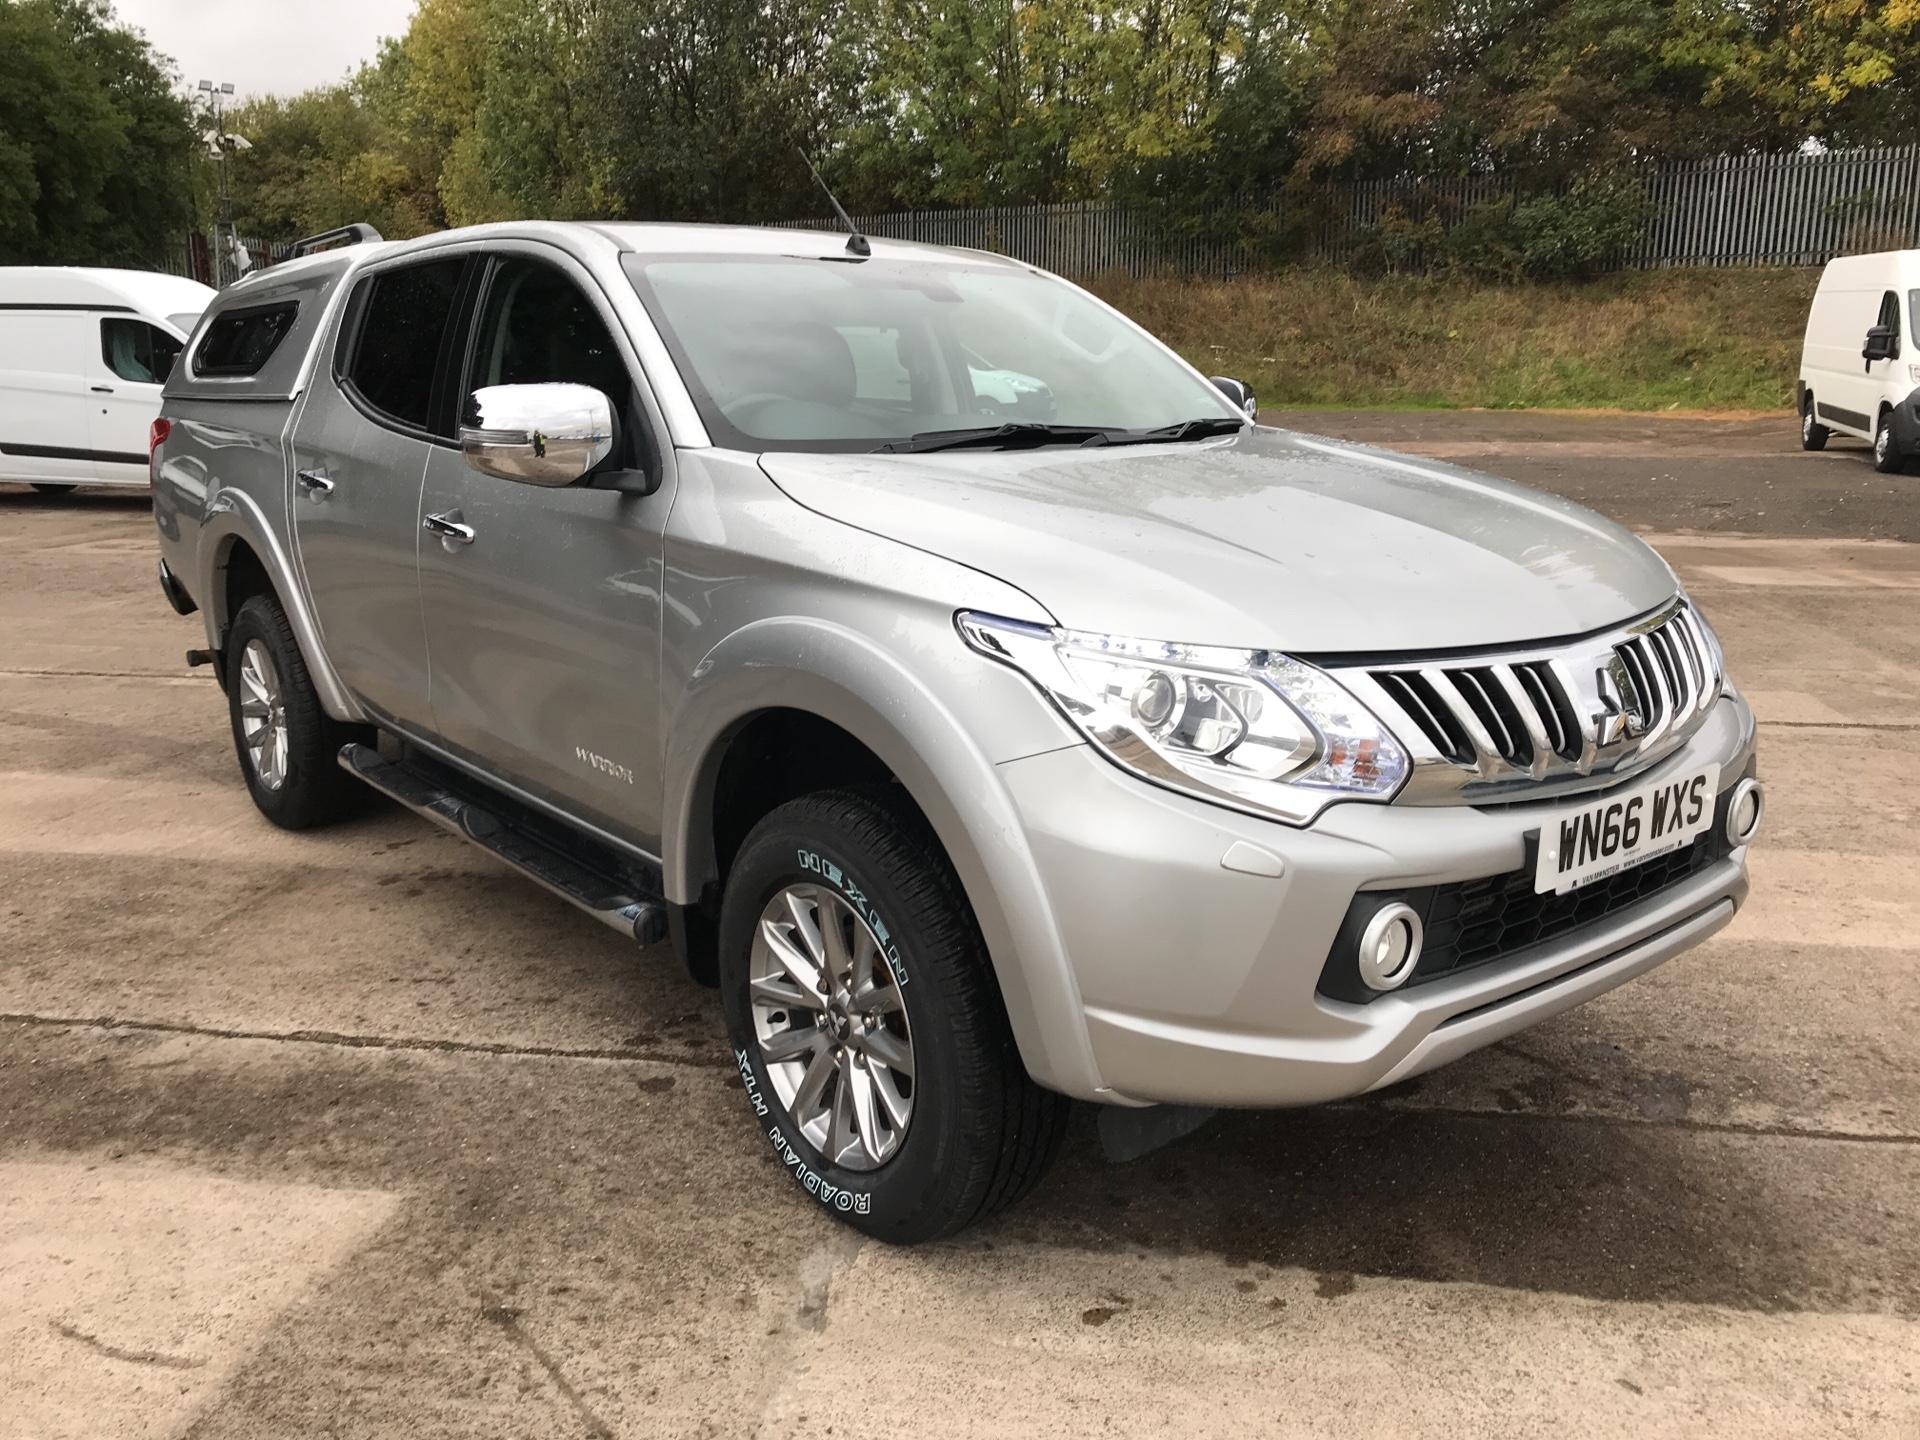 2016 Mitsubishi L200 DOUBLE CAB DI-D 178PS WARRIOR 4WD (WN66WXS)